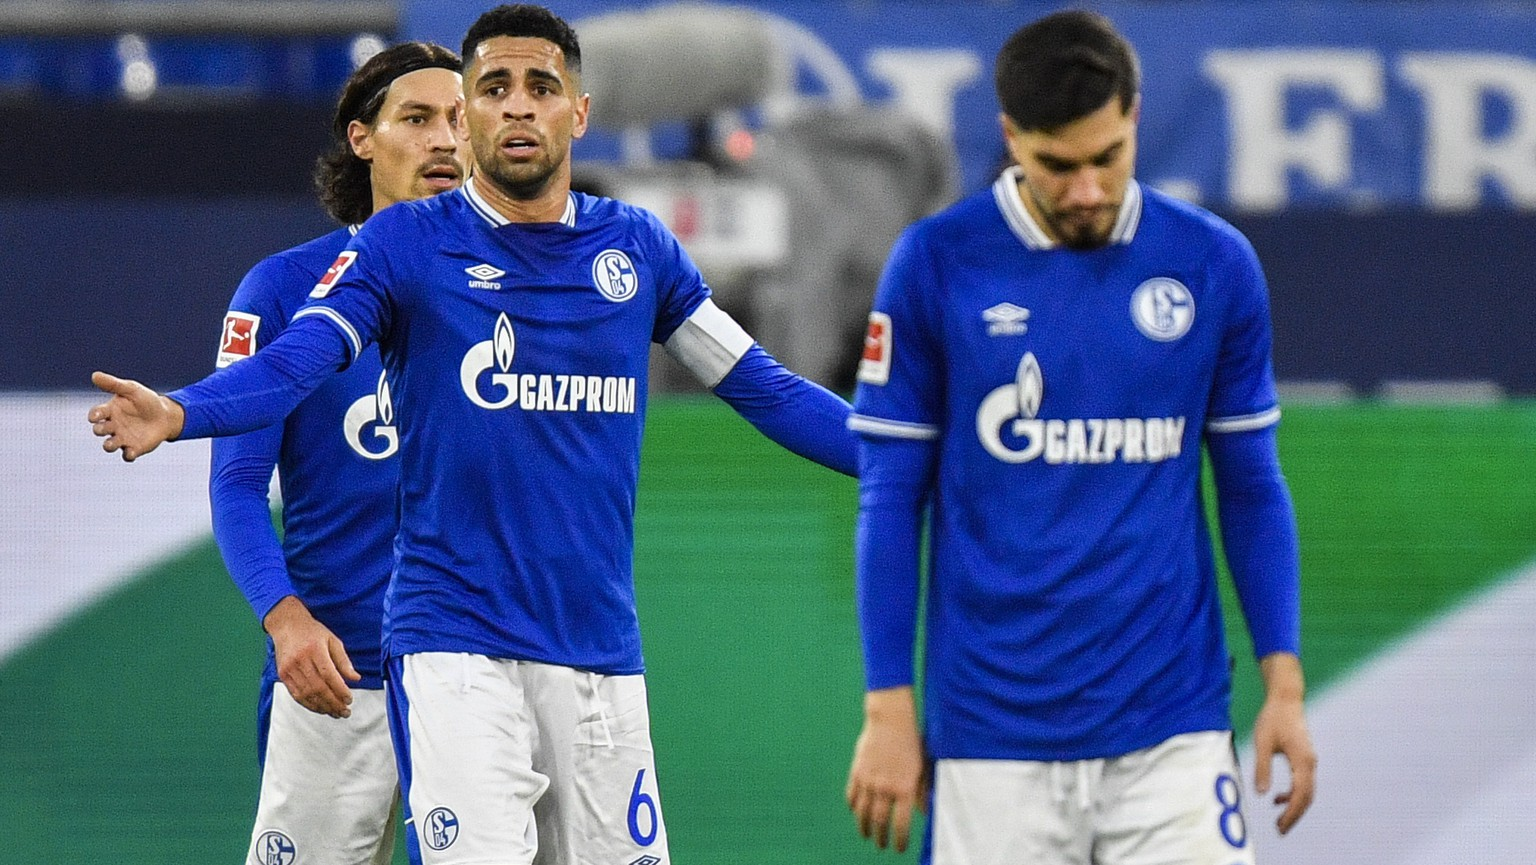 Schalke's Omar Mascarell, center, reacts during the German Bundesliga soccer match between VfL Wolfsburg and FC Schalke 04 at the Veltins-Arena in Gelsenkirchen, Germany, Saturday, Nov. 21, 2020. (AP Photo/Martin Meissner, Pool)